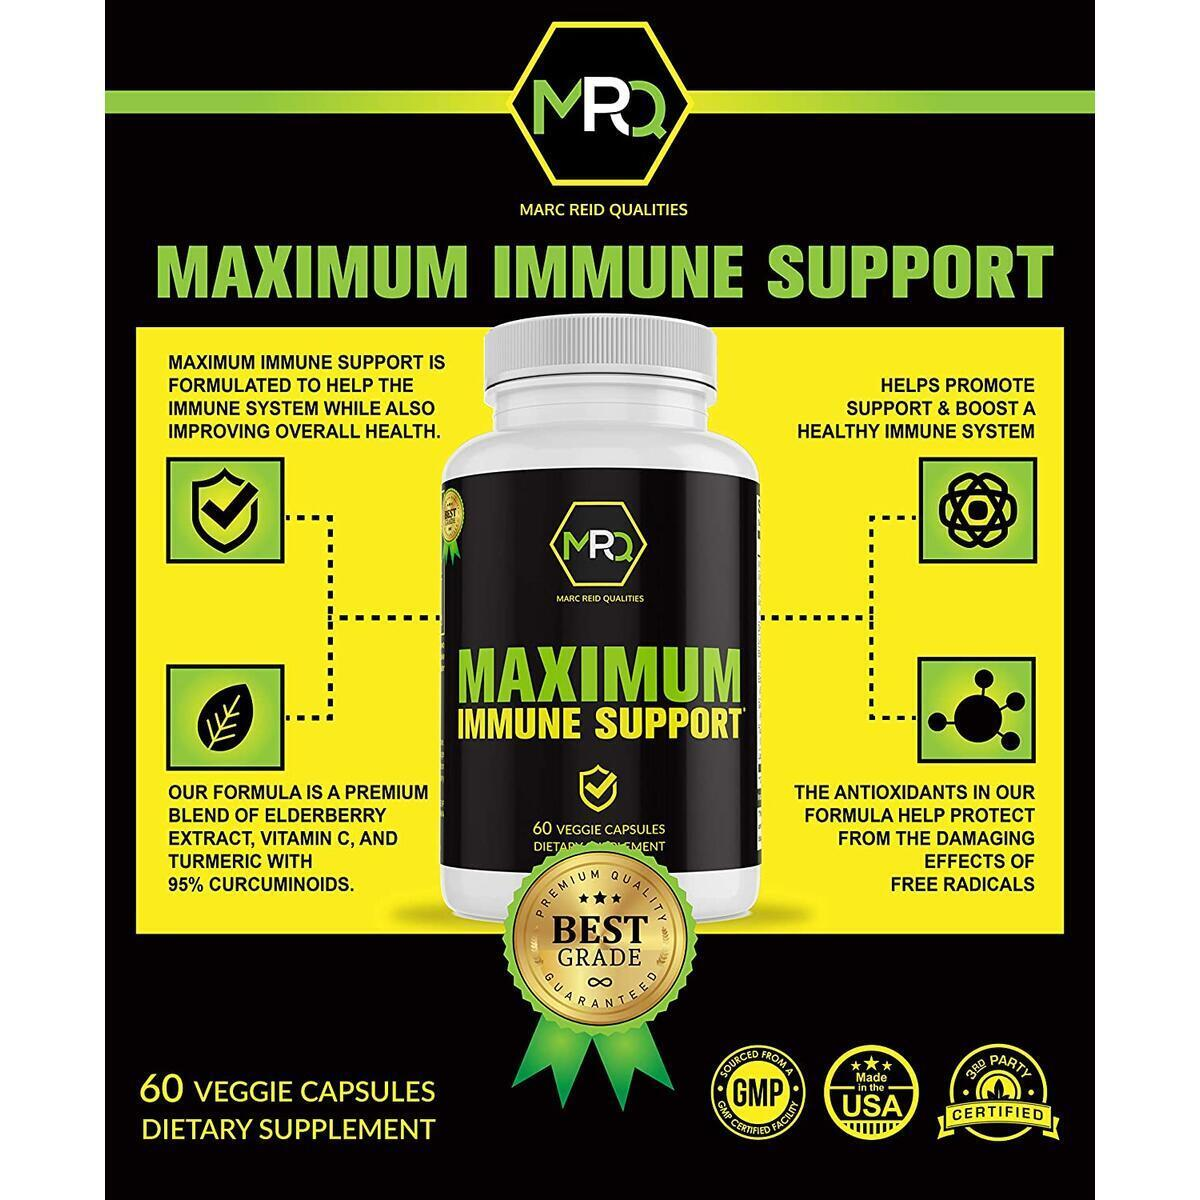 MRQ Immune Support Vitamins - Zinc Supplement, Vitamin C, E & B6 Elderberry Organic Daily Immunity Booster for Adult & Kids Echinacea L Glutamine Powder Gummies, Turmeric Capsules